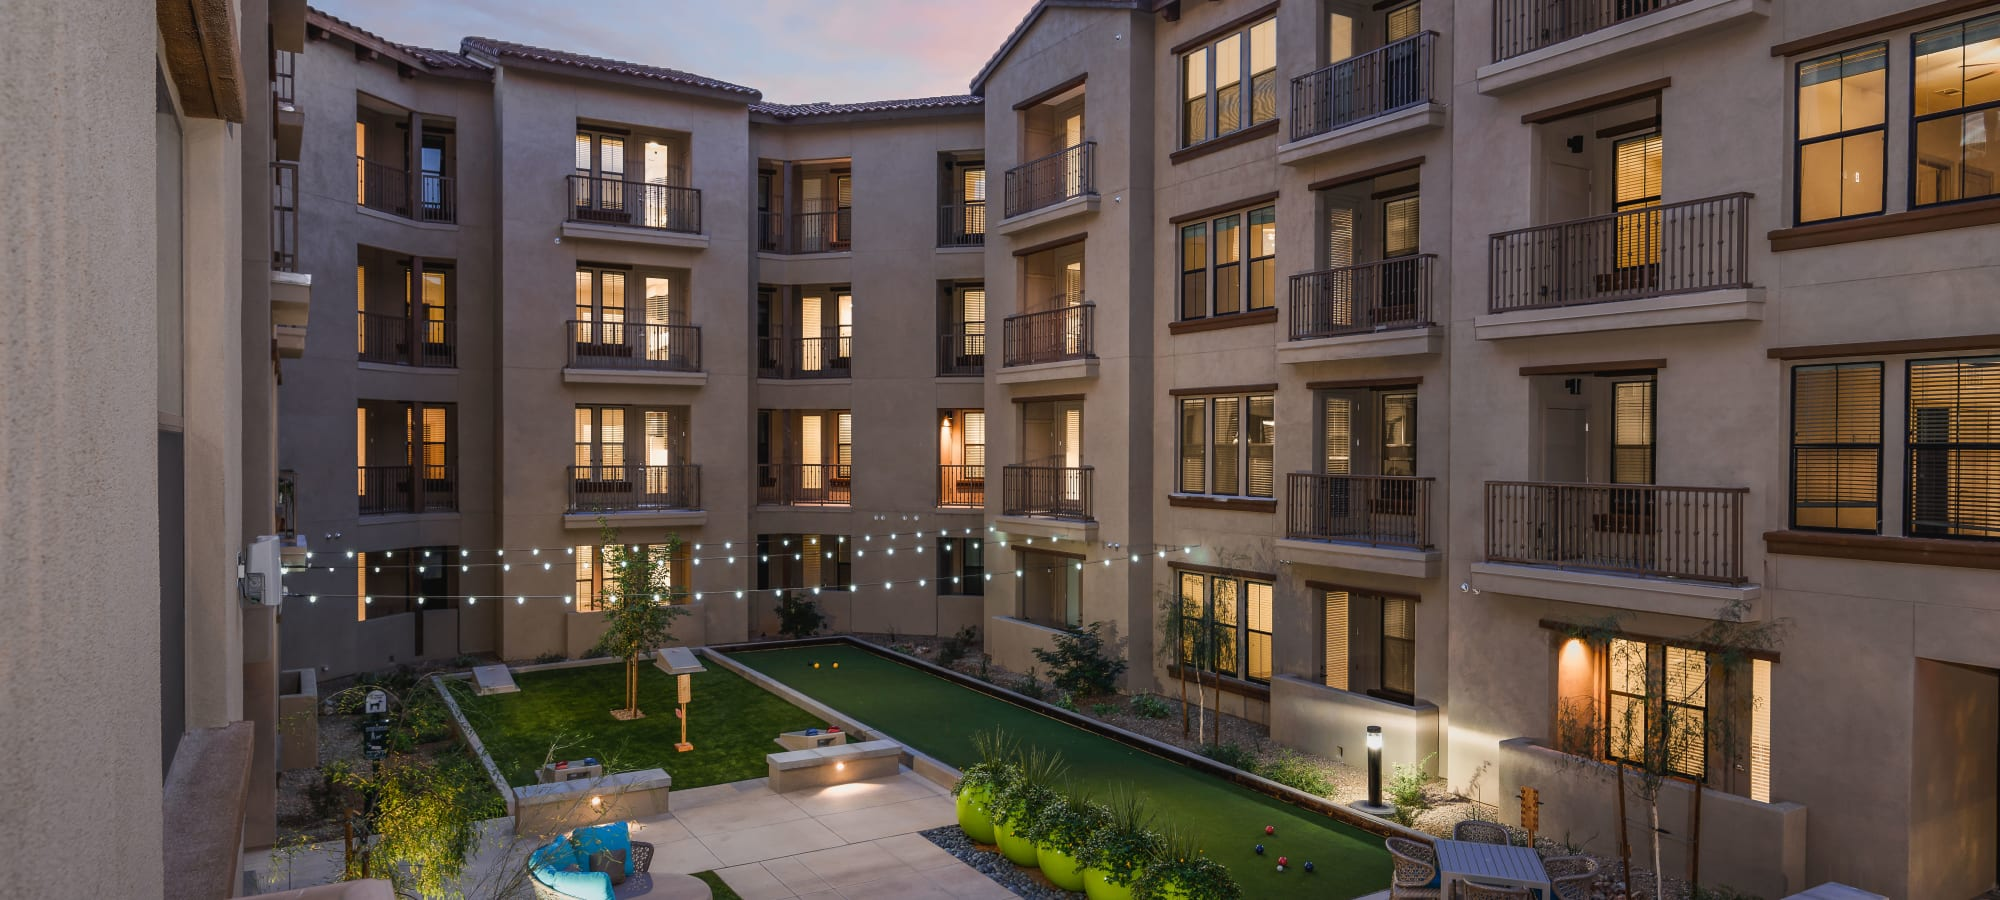 View of the courtyard between resident buildings at The Core Scottsdale in Scottsdale, Arizona